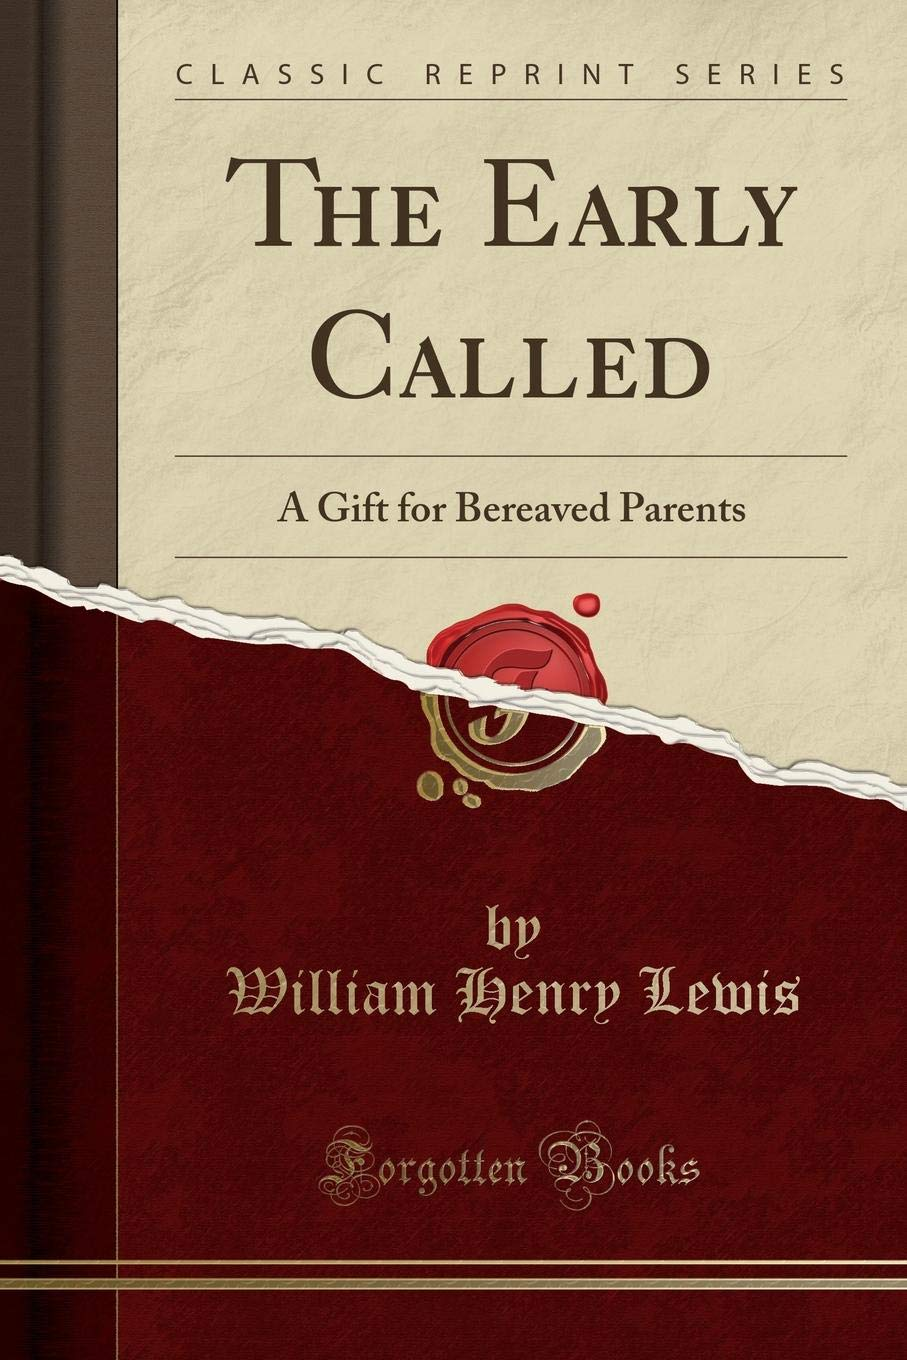 The Early Called: A Gift for Bereaved Parents (Classic Reprint) Paperback – January 19, 2018